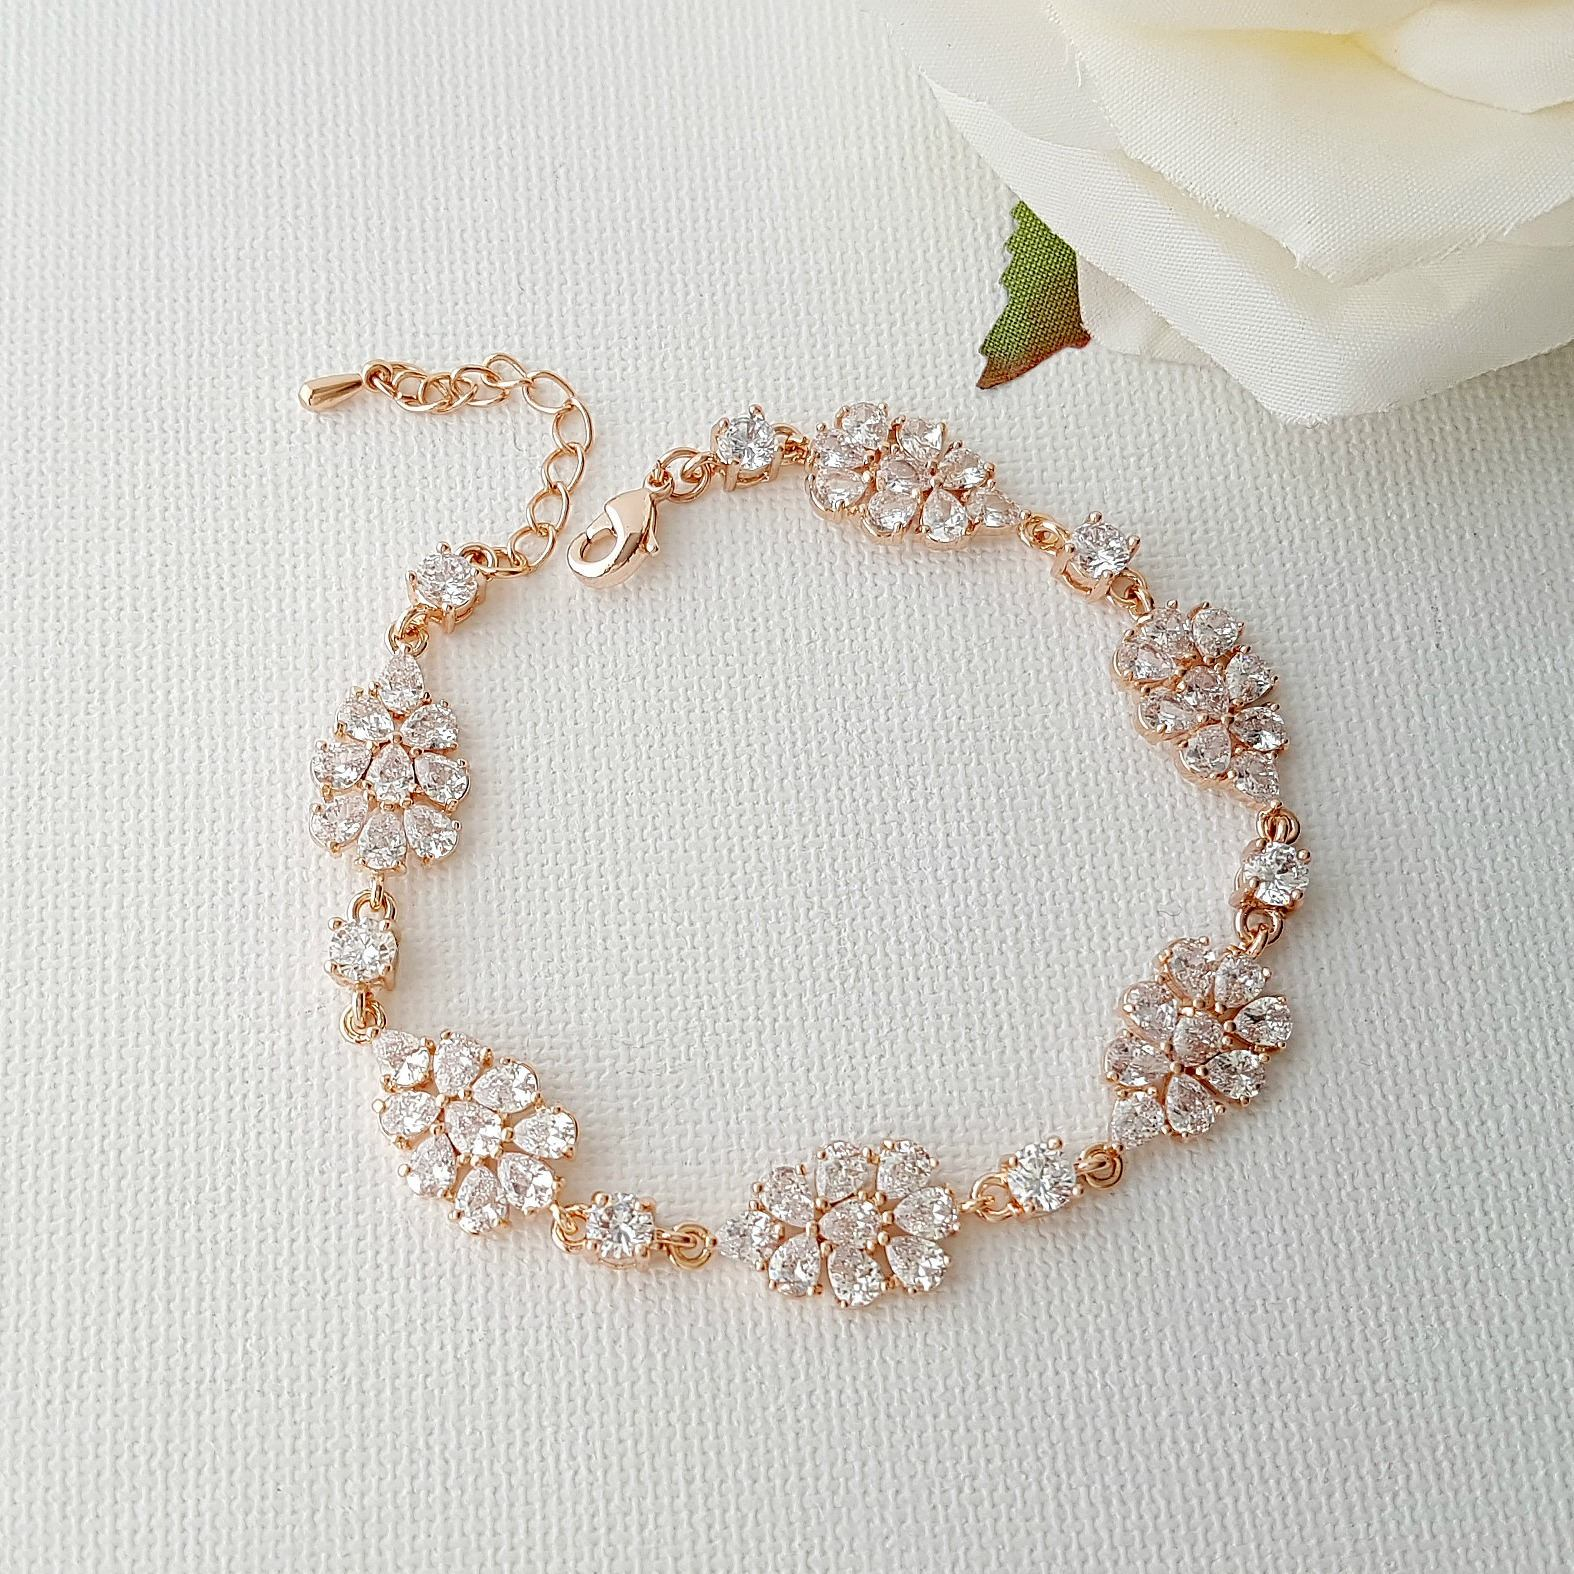 Rose Gold Bridal Bracelet Crystal Wedding Bracelet Wedding Jewelry